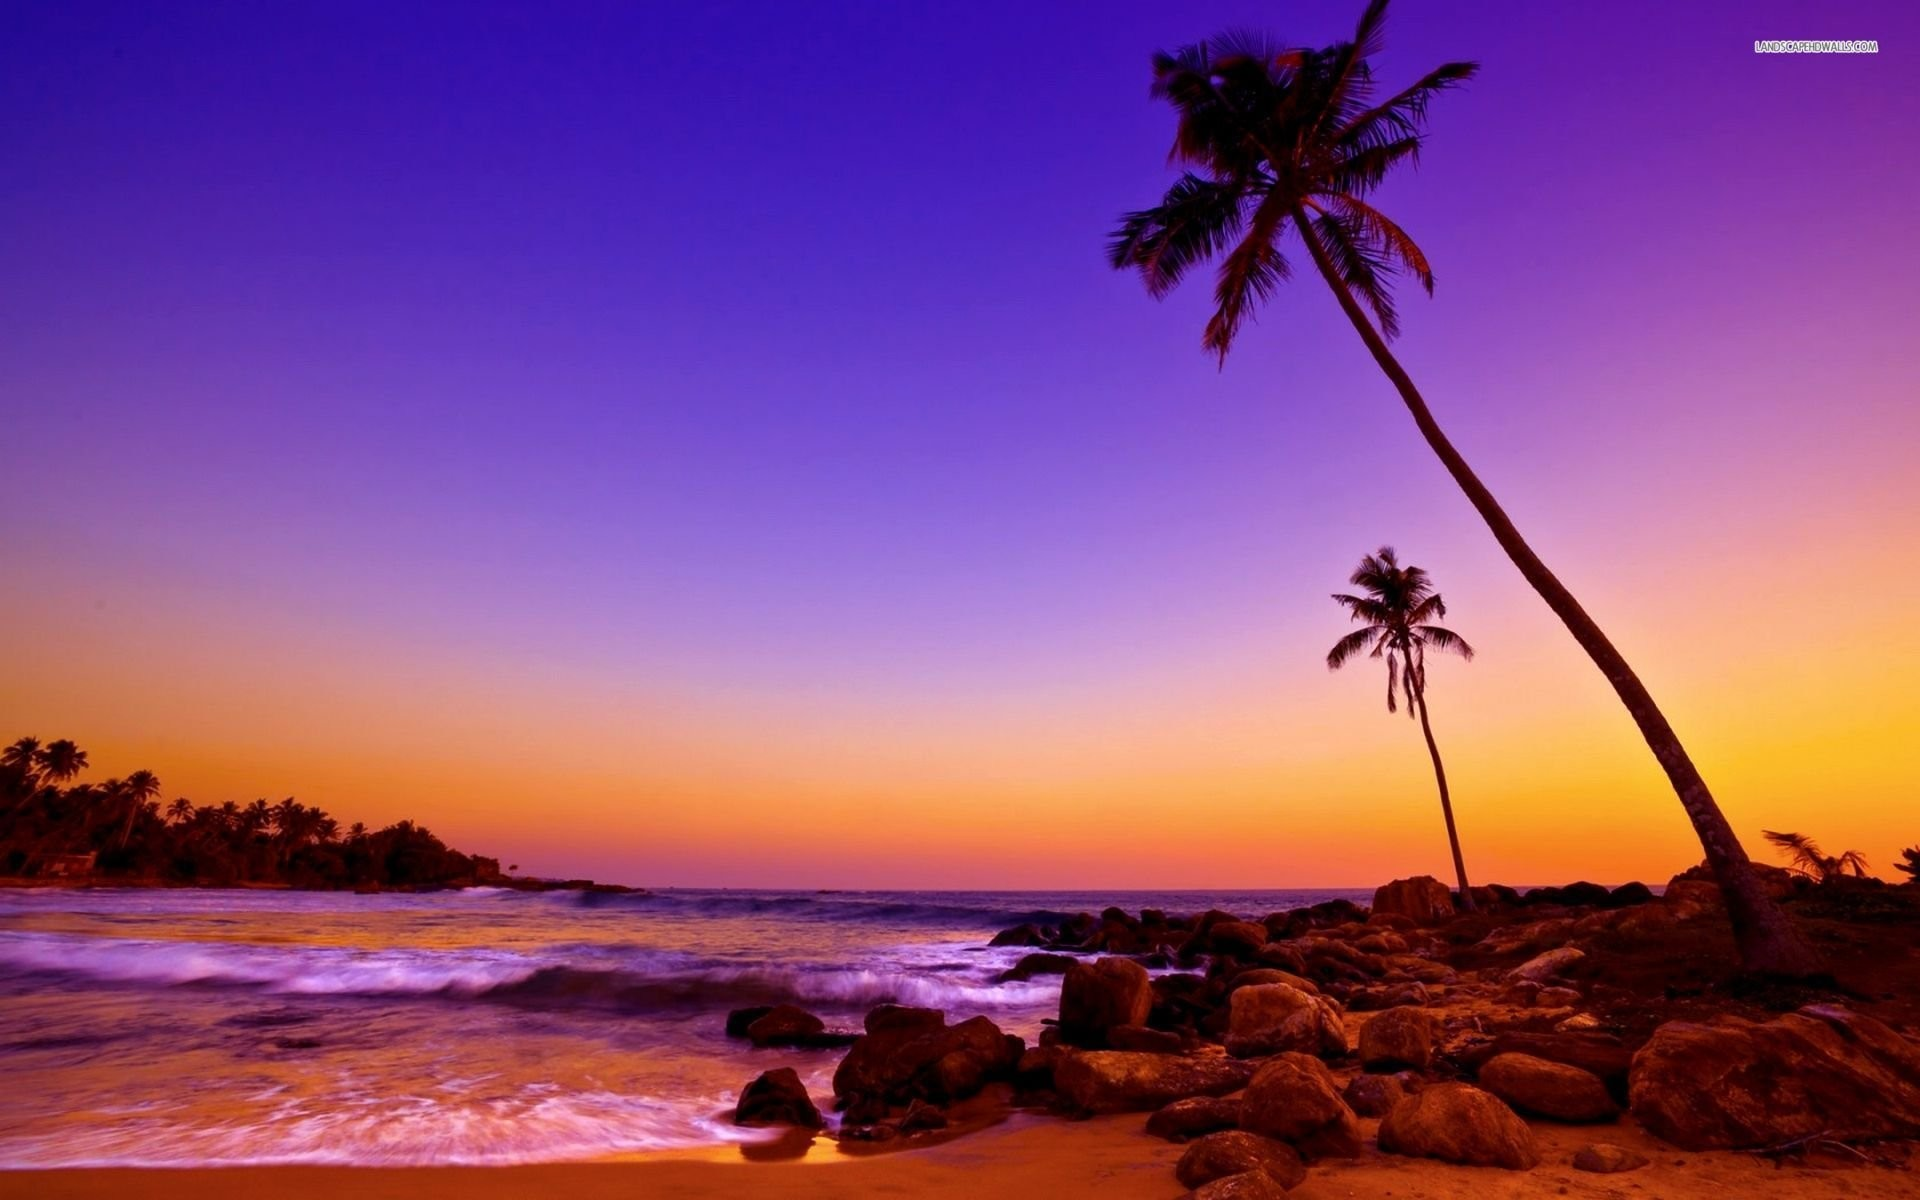 Hd Tropical Island Beach Paradise Wallpapers And Backgrounds: Tropical Island Sunset Wallpaper (58+ Images